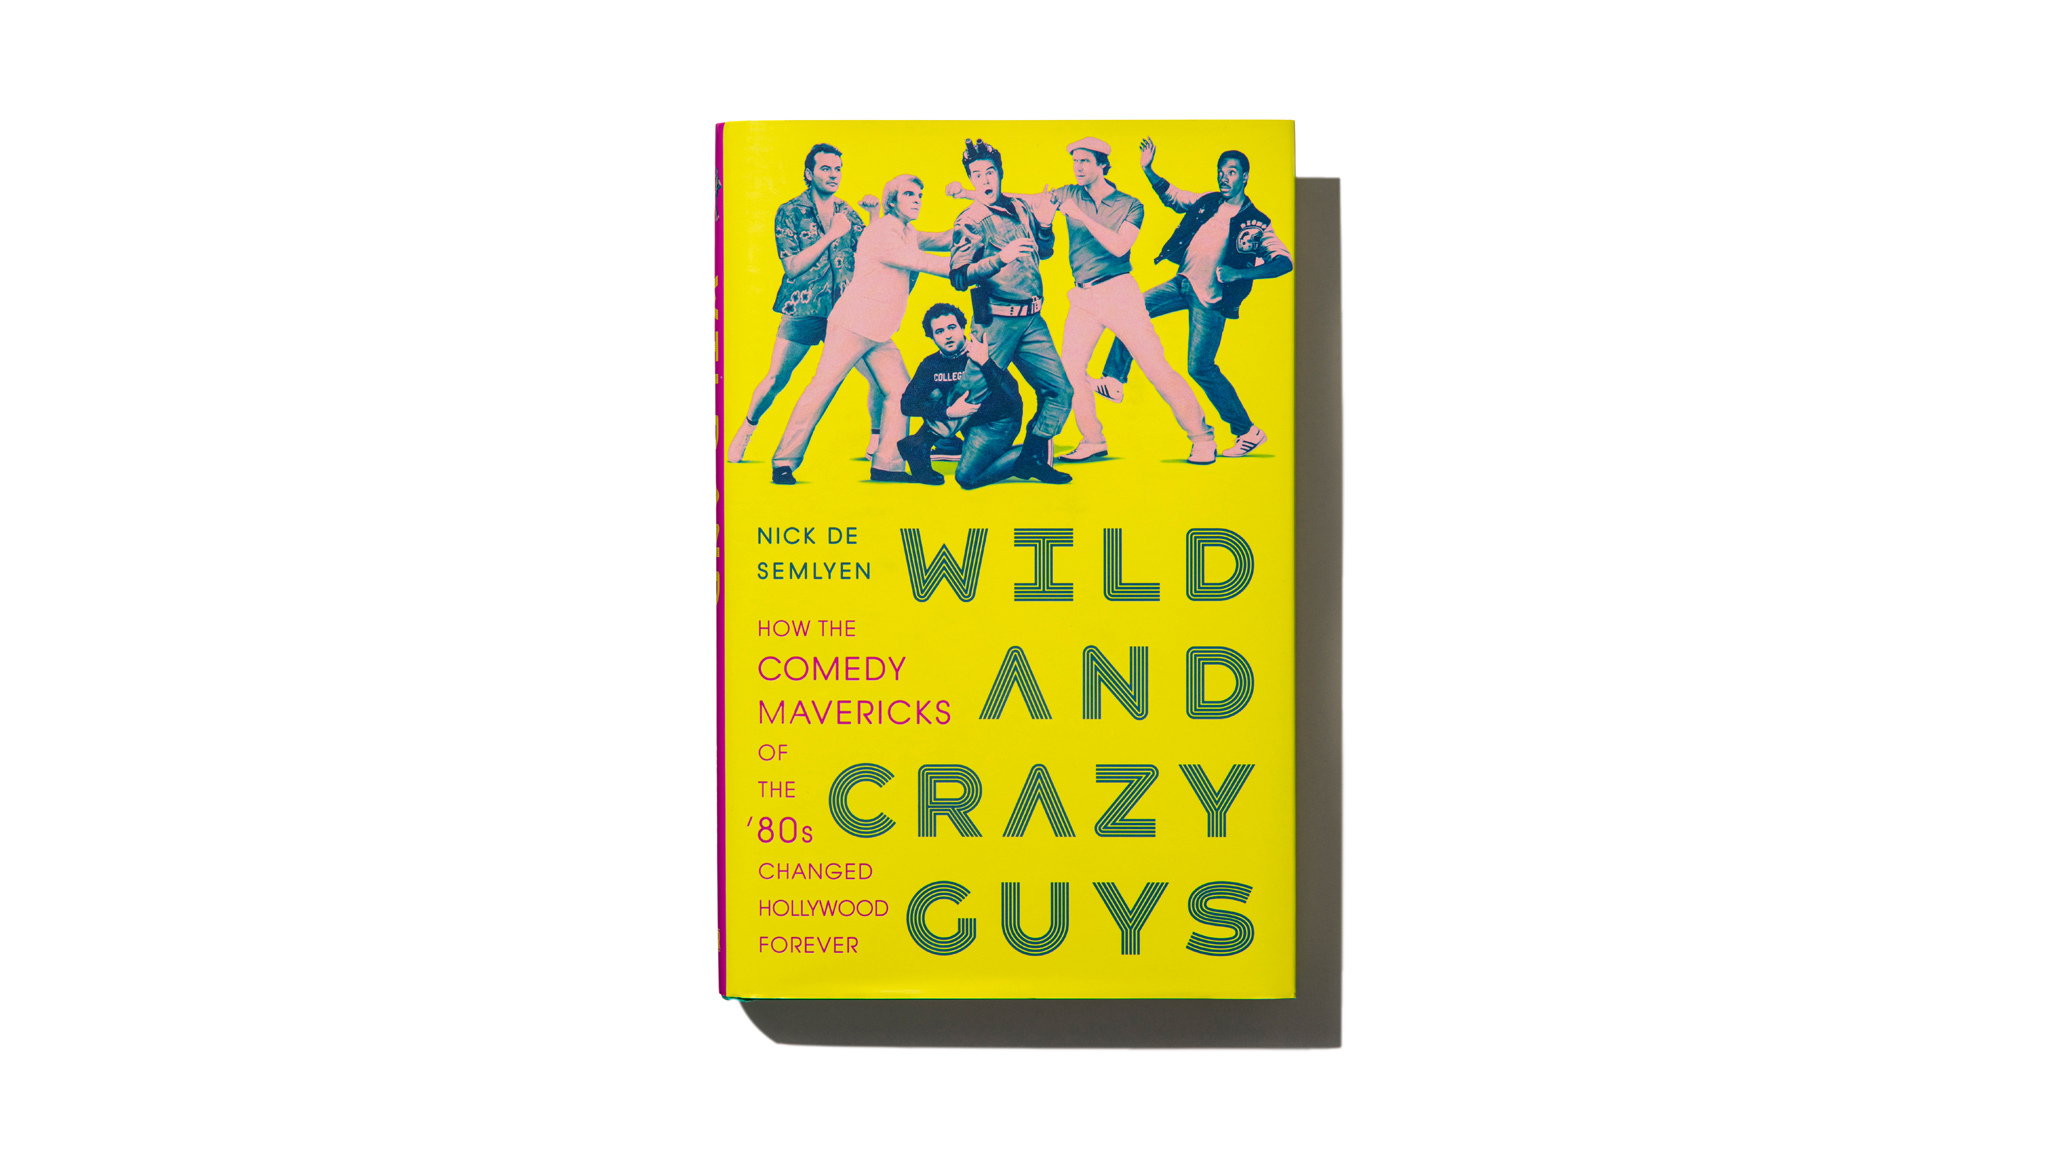 The book Wild and Crazy Guys by Nick de Semlyen